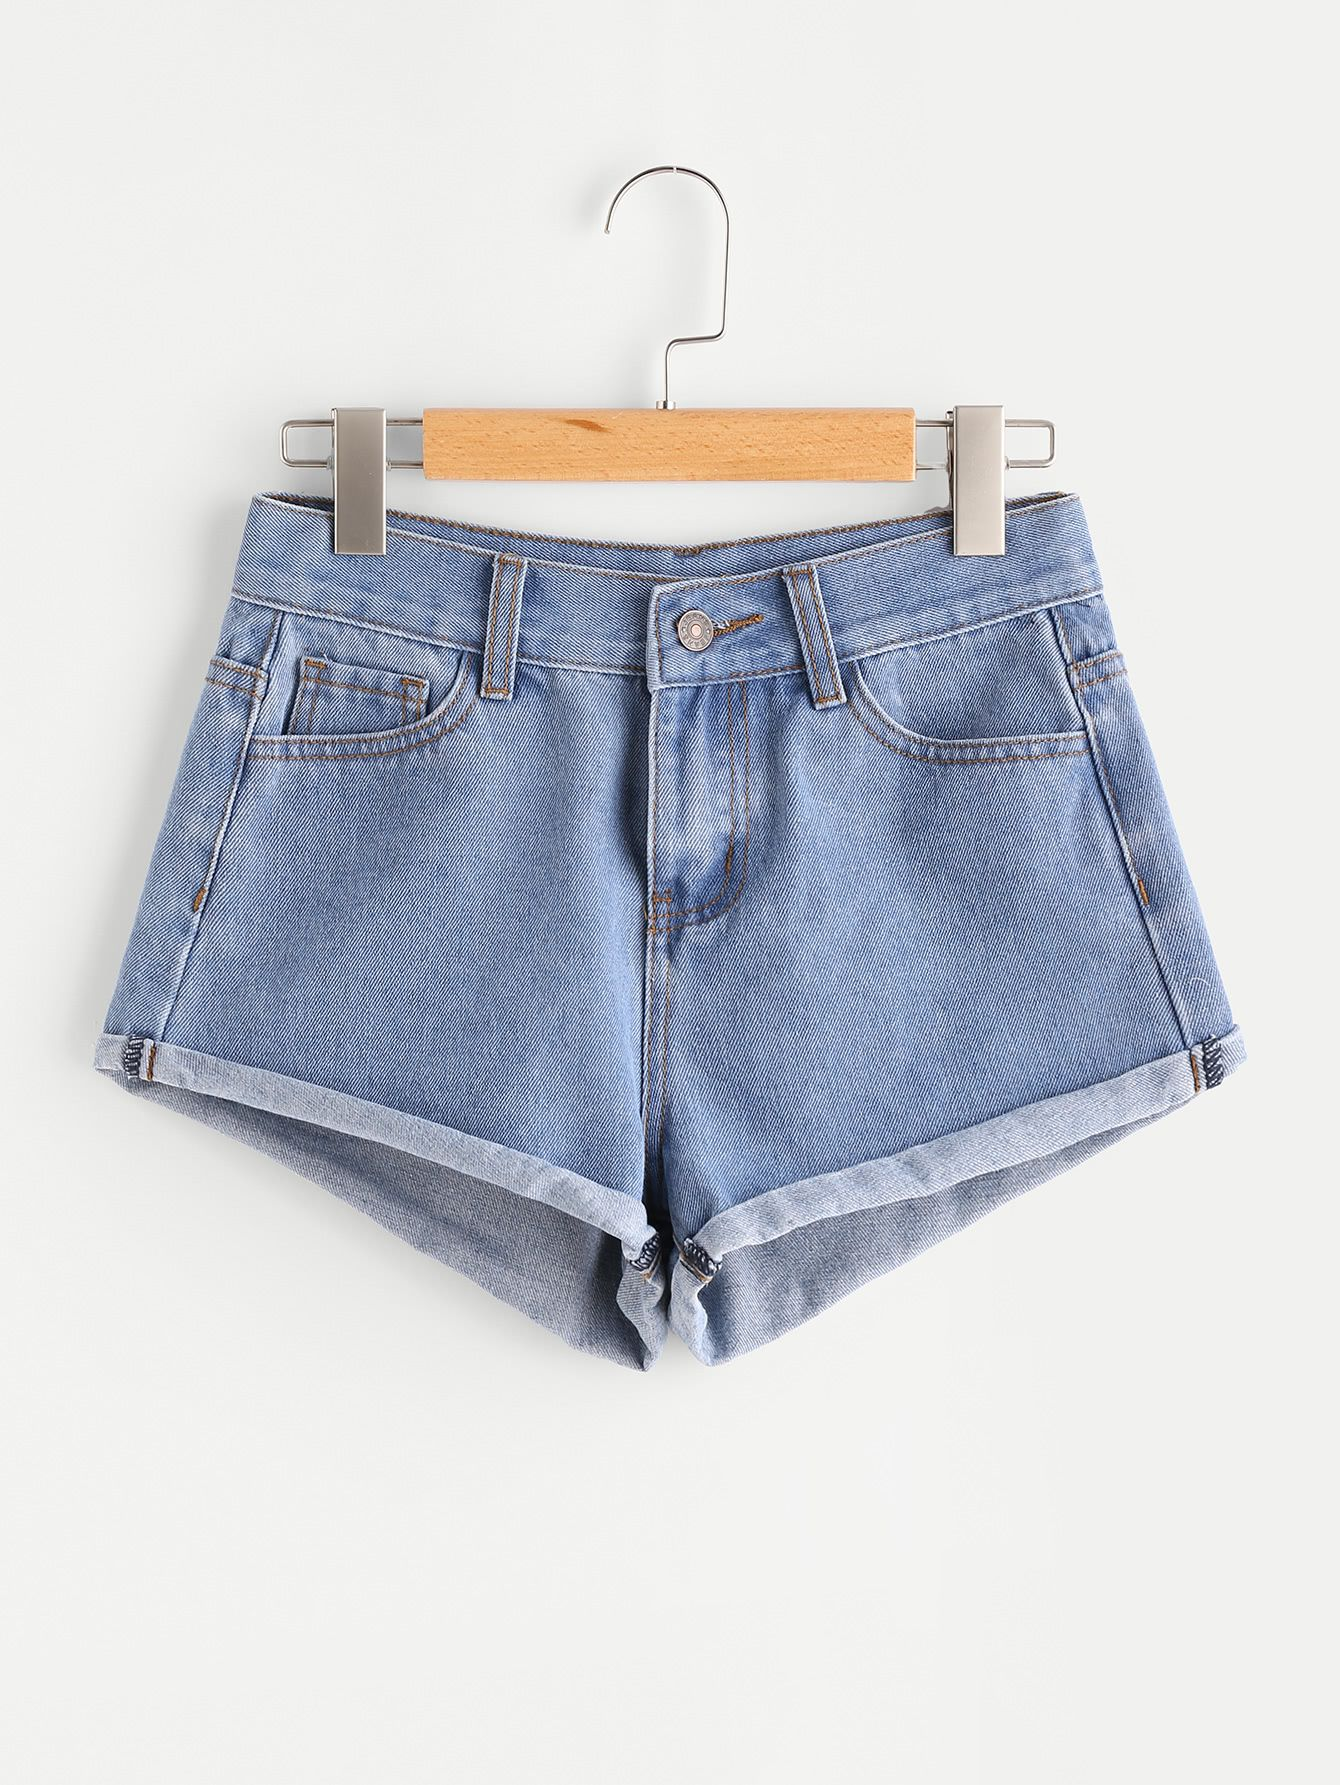 6f3e67fe26b Shop Light Wash Cuffed Denim Shorts online. SheIn offers Light Wash Cuffed  Denim Shorts   more to fit your fashionable needs.